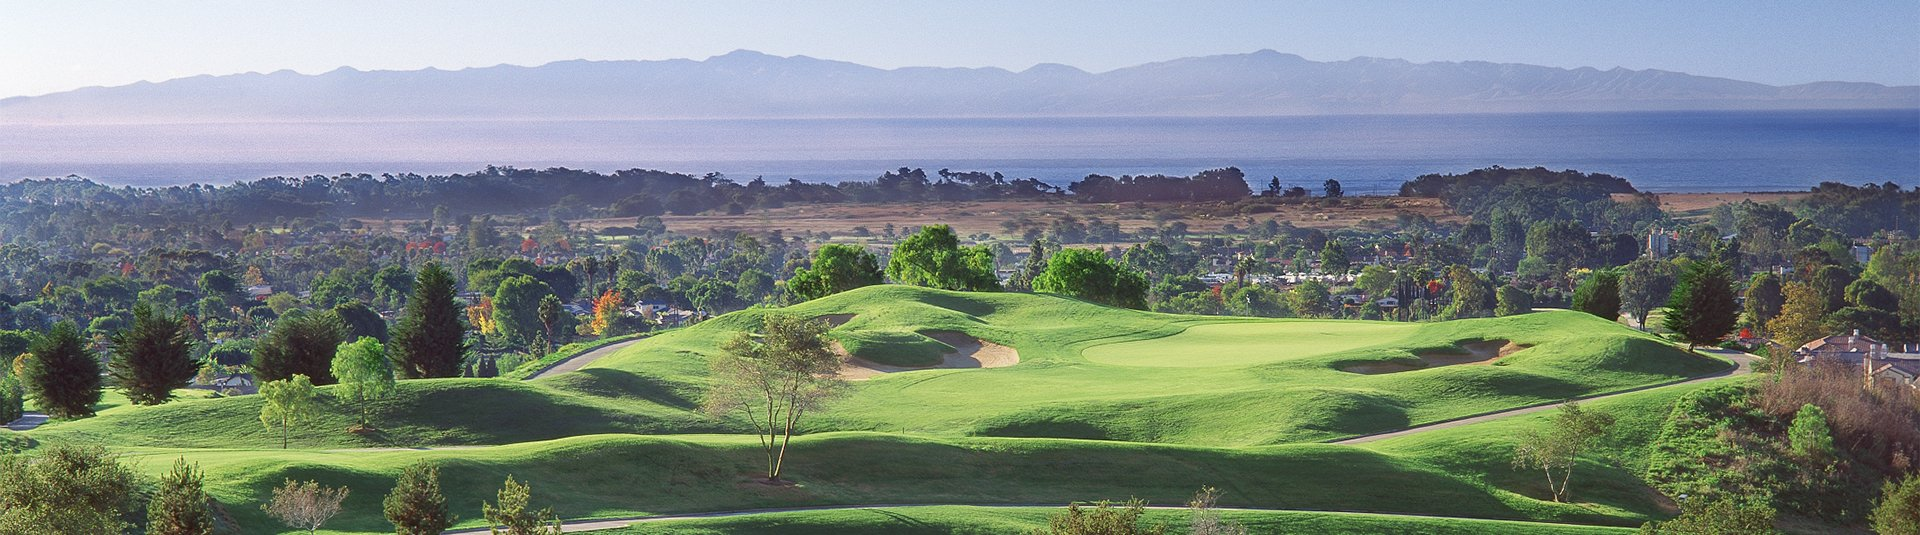 Glen Annie Golf Club in Santa Barbara County, CA